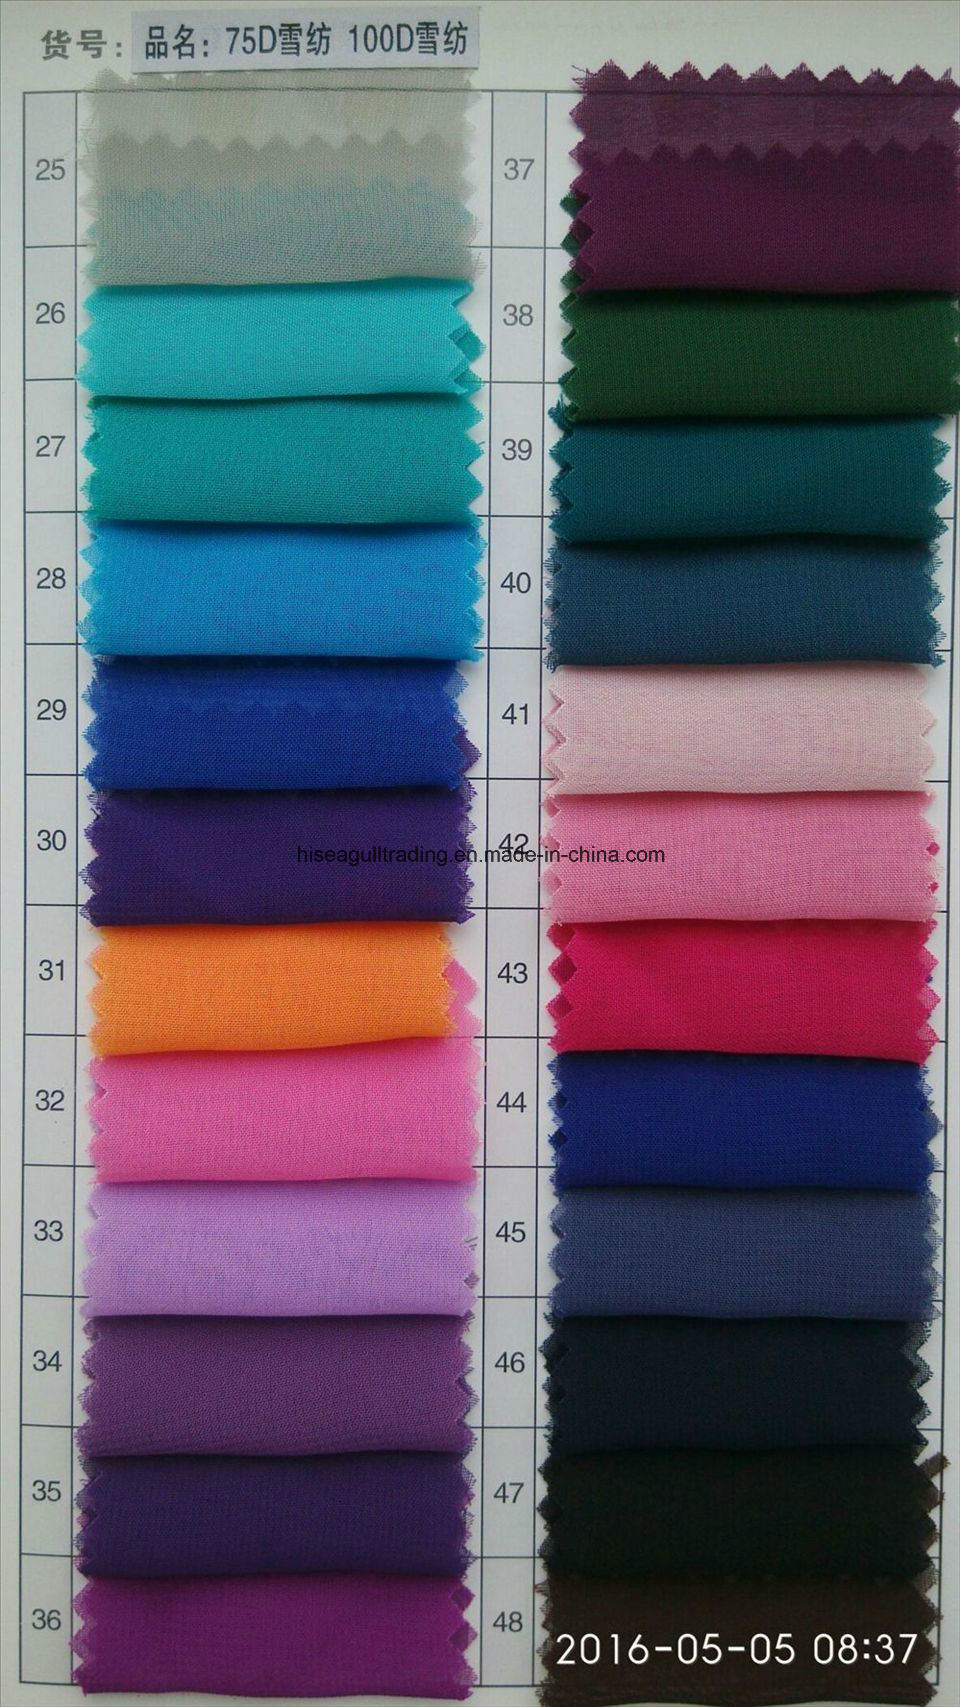 100d*100d Polyester Chiffon Fabric for Skirt, Scarves etc pictures & photos